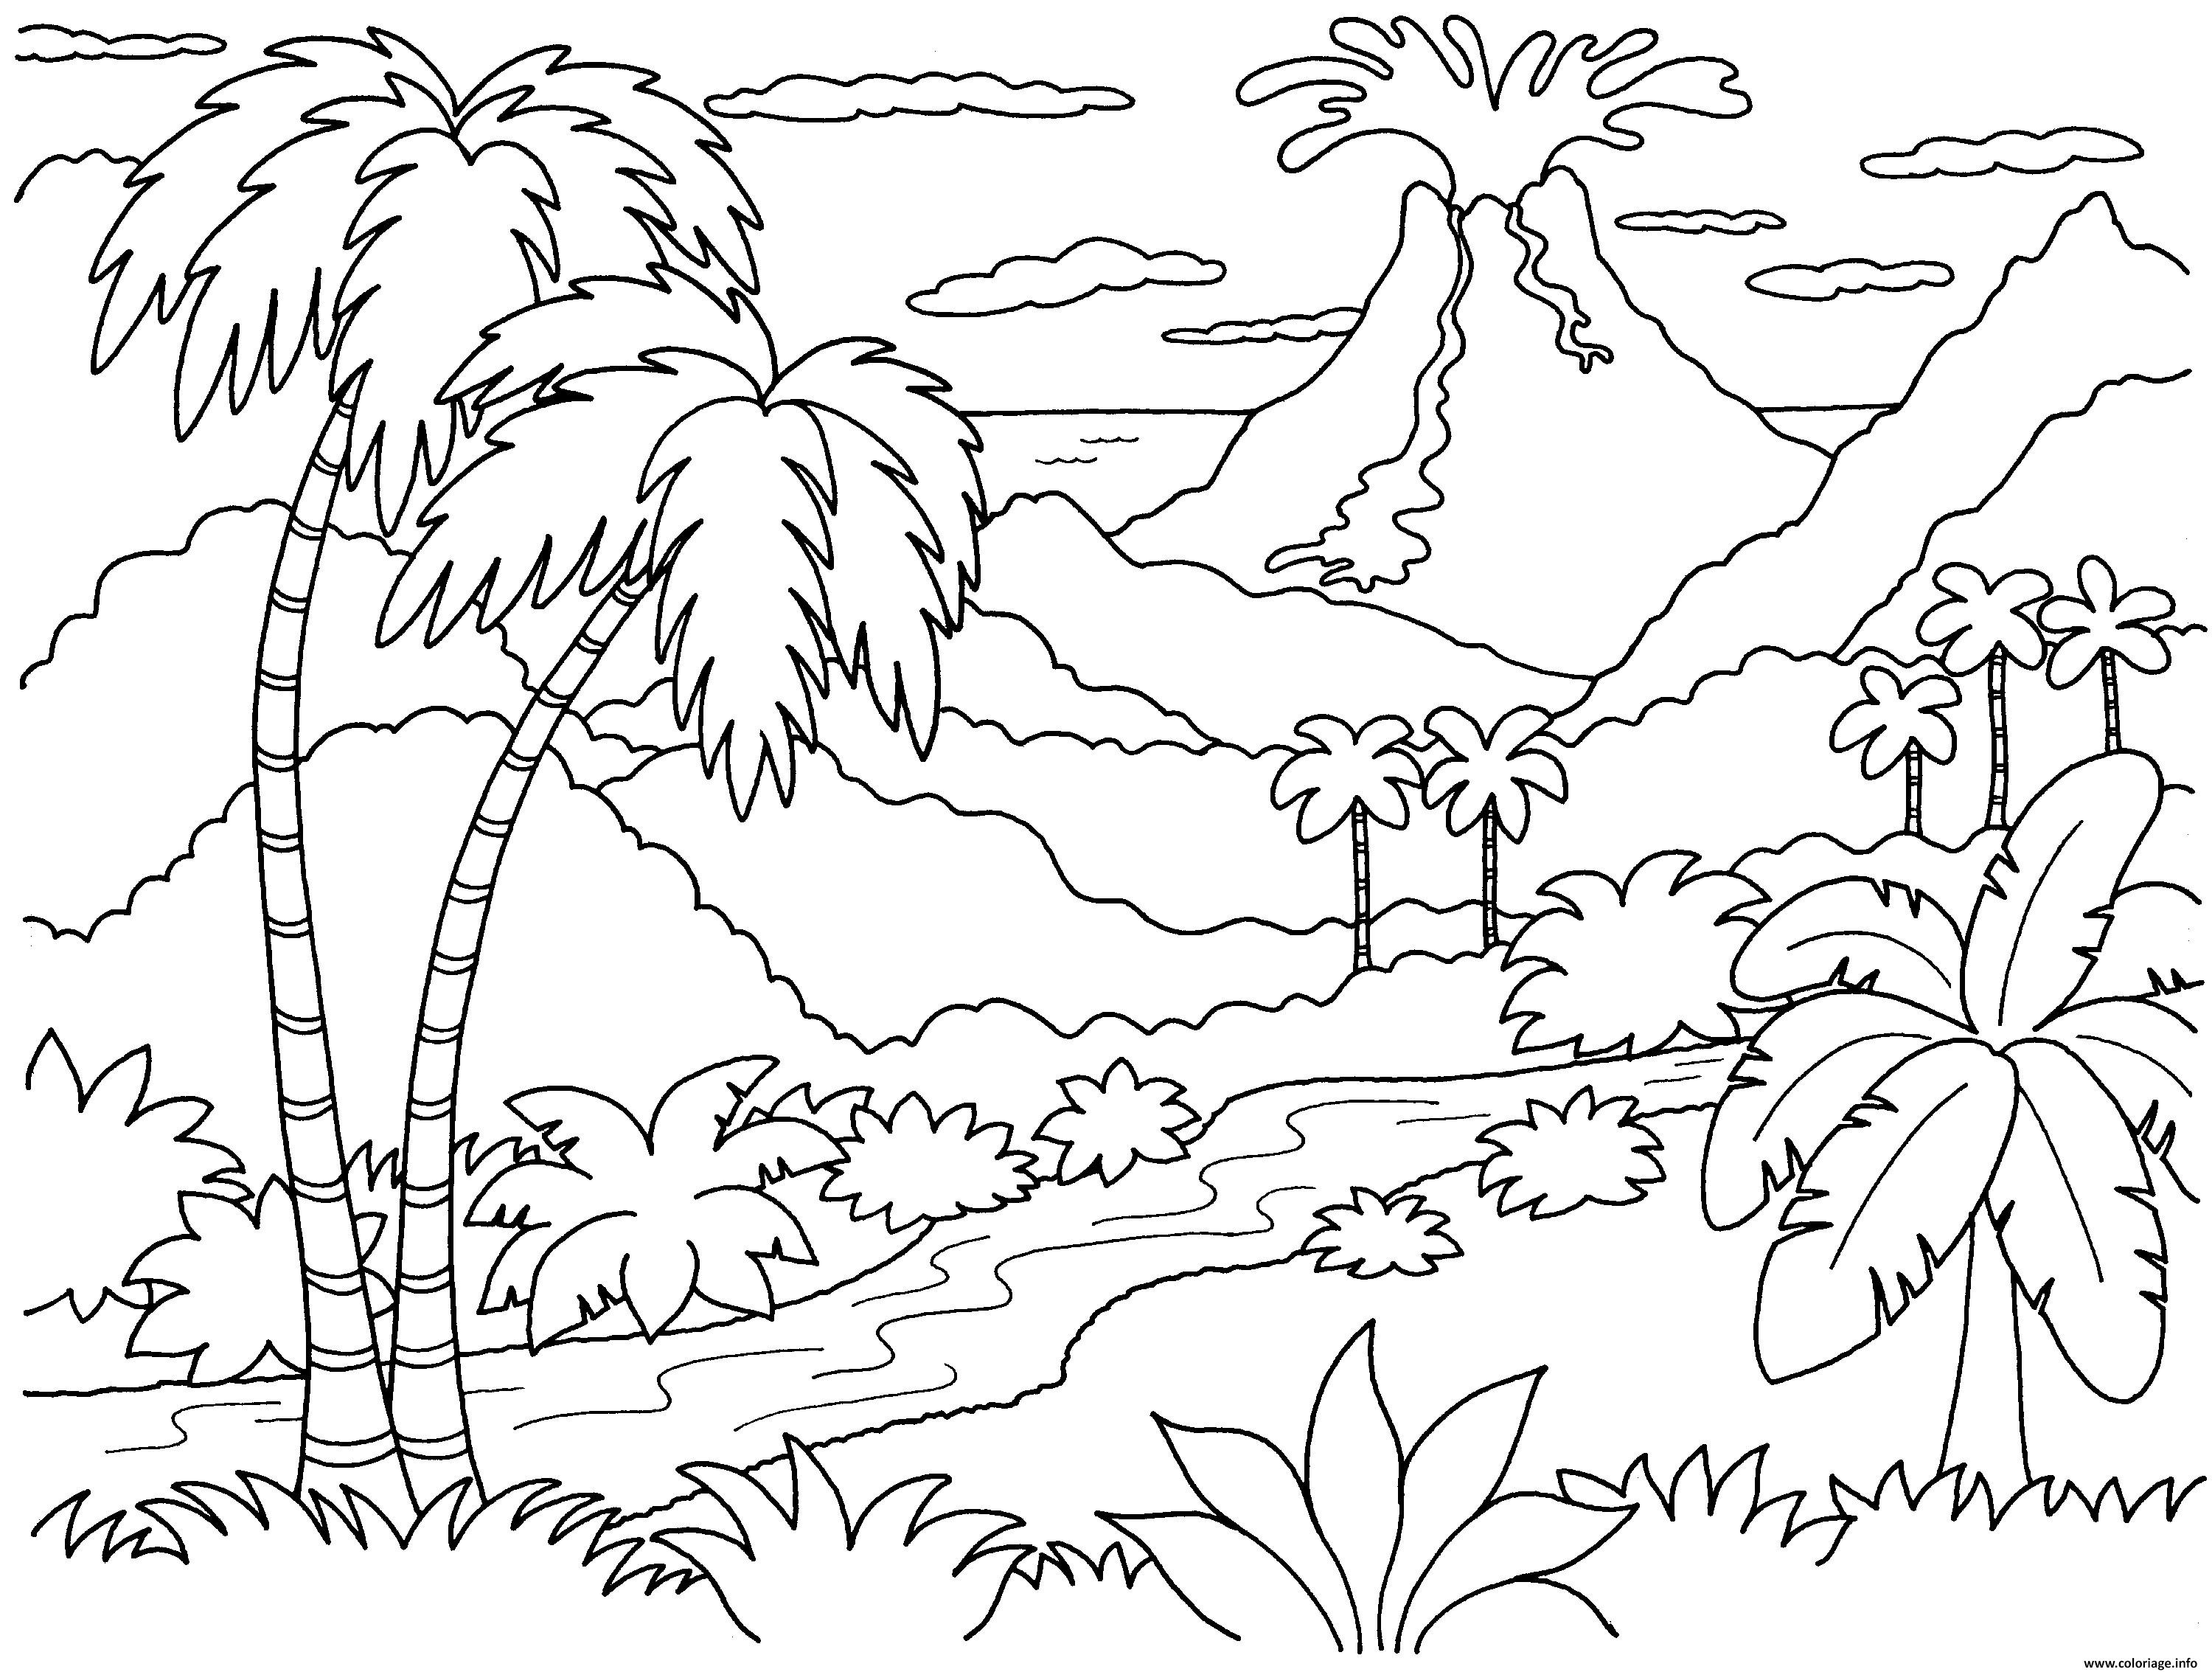 Coloriage Mandala Volcan.Coloriage Nature Paysage Volcan Dessin